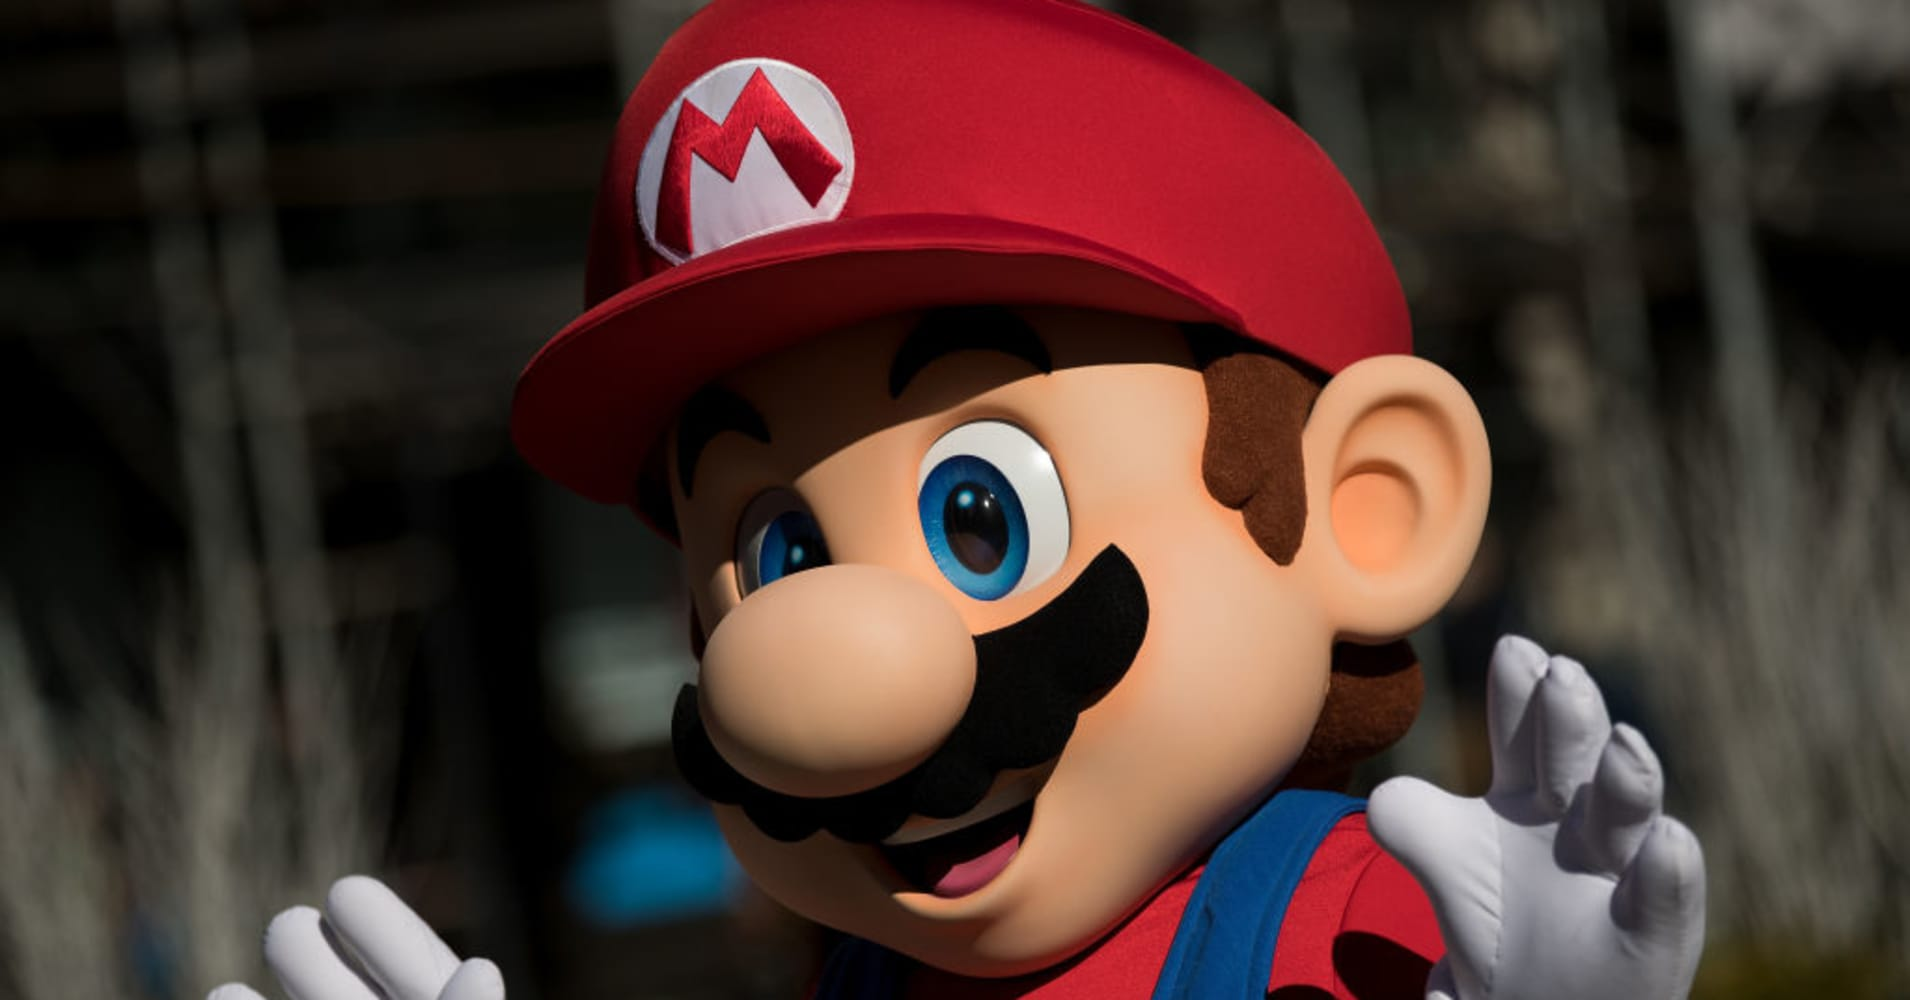 Nintendo shares surge more than 16% after tie-up with Tencent to sell Switch console in China